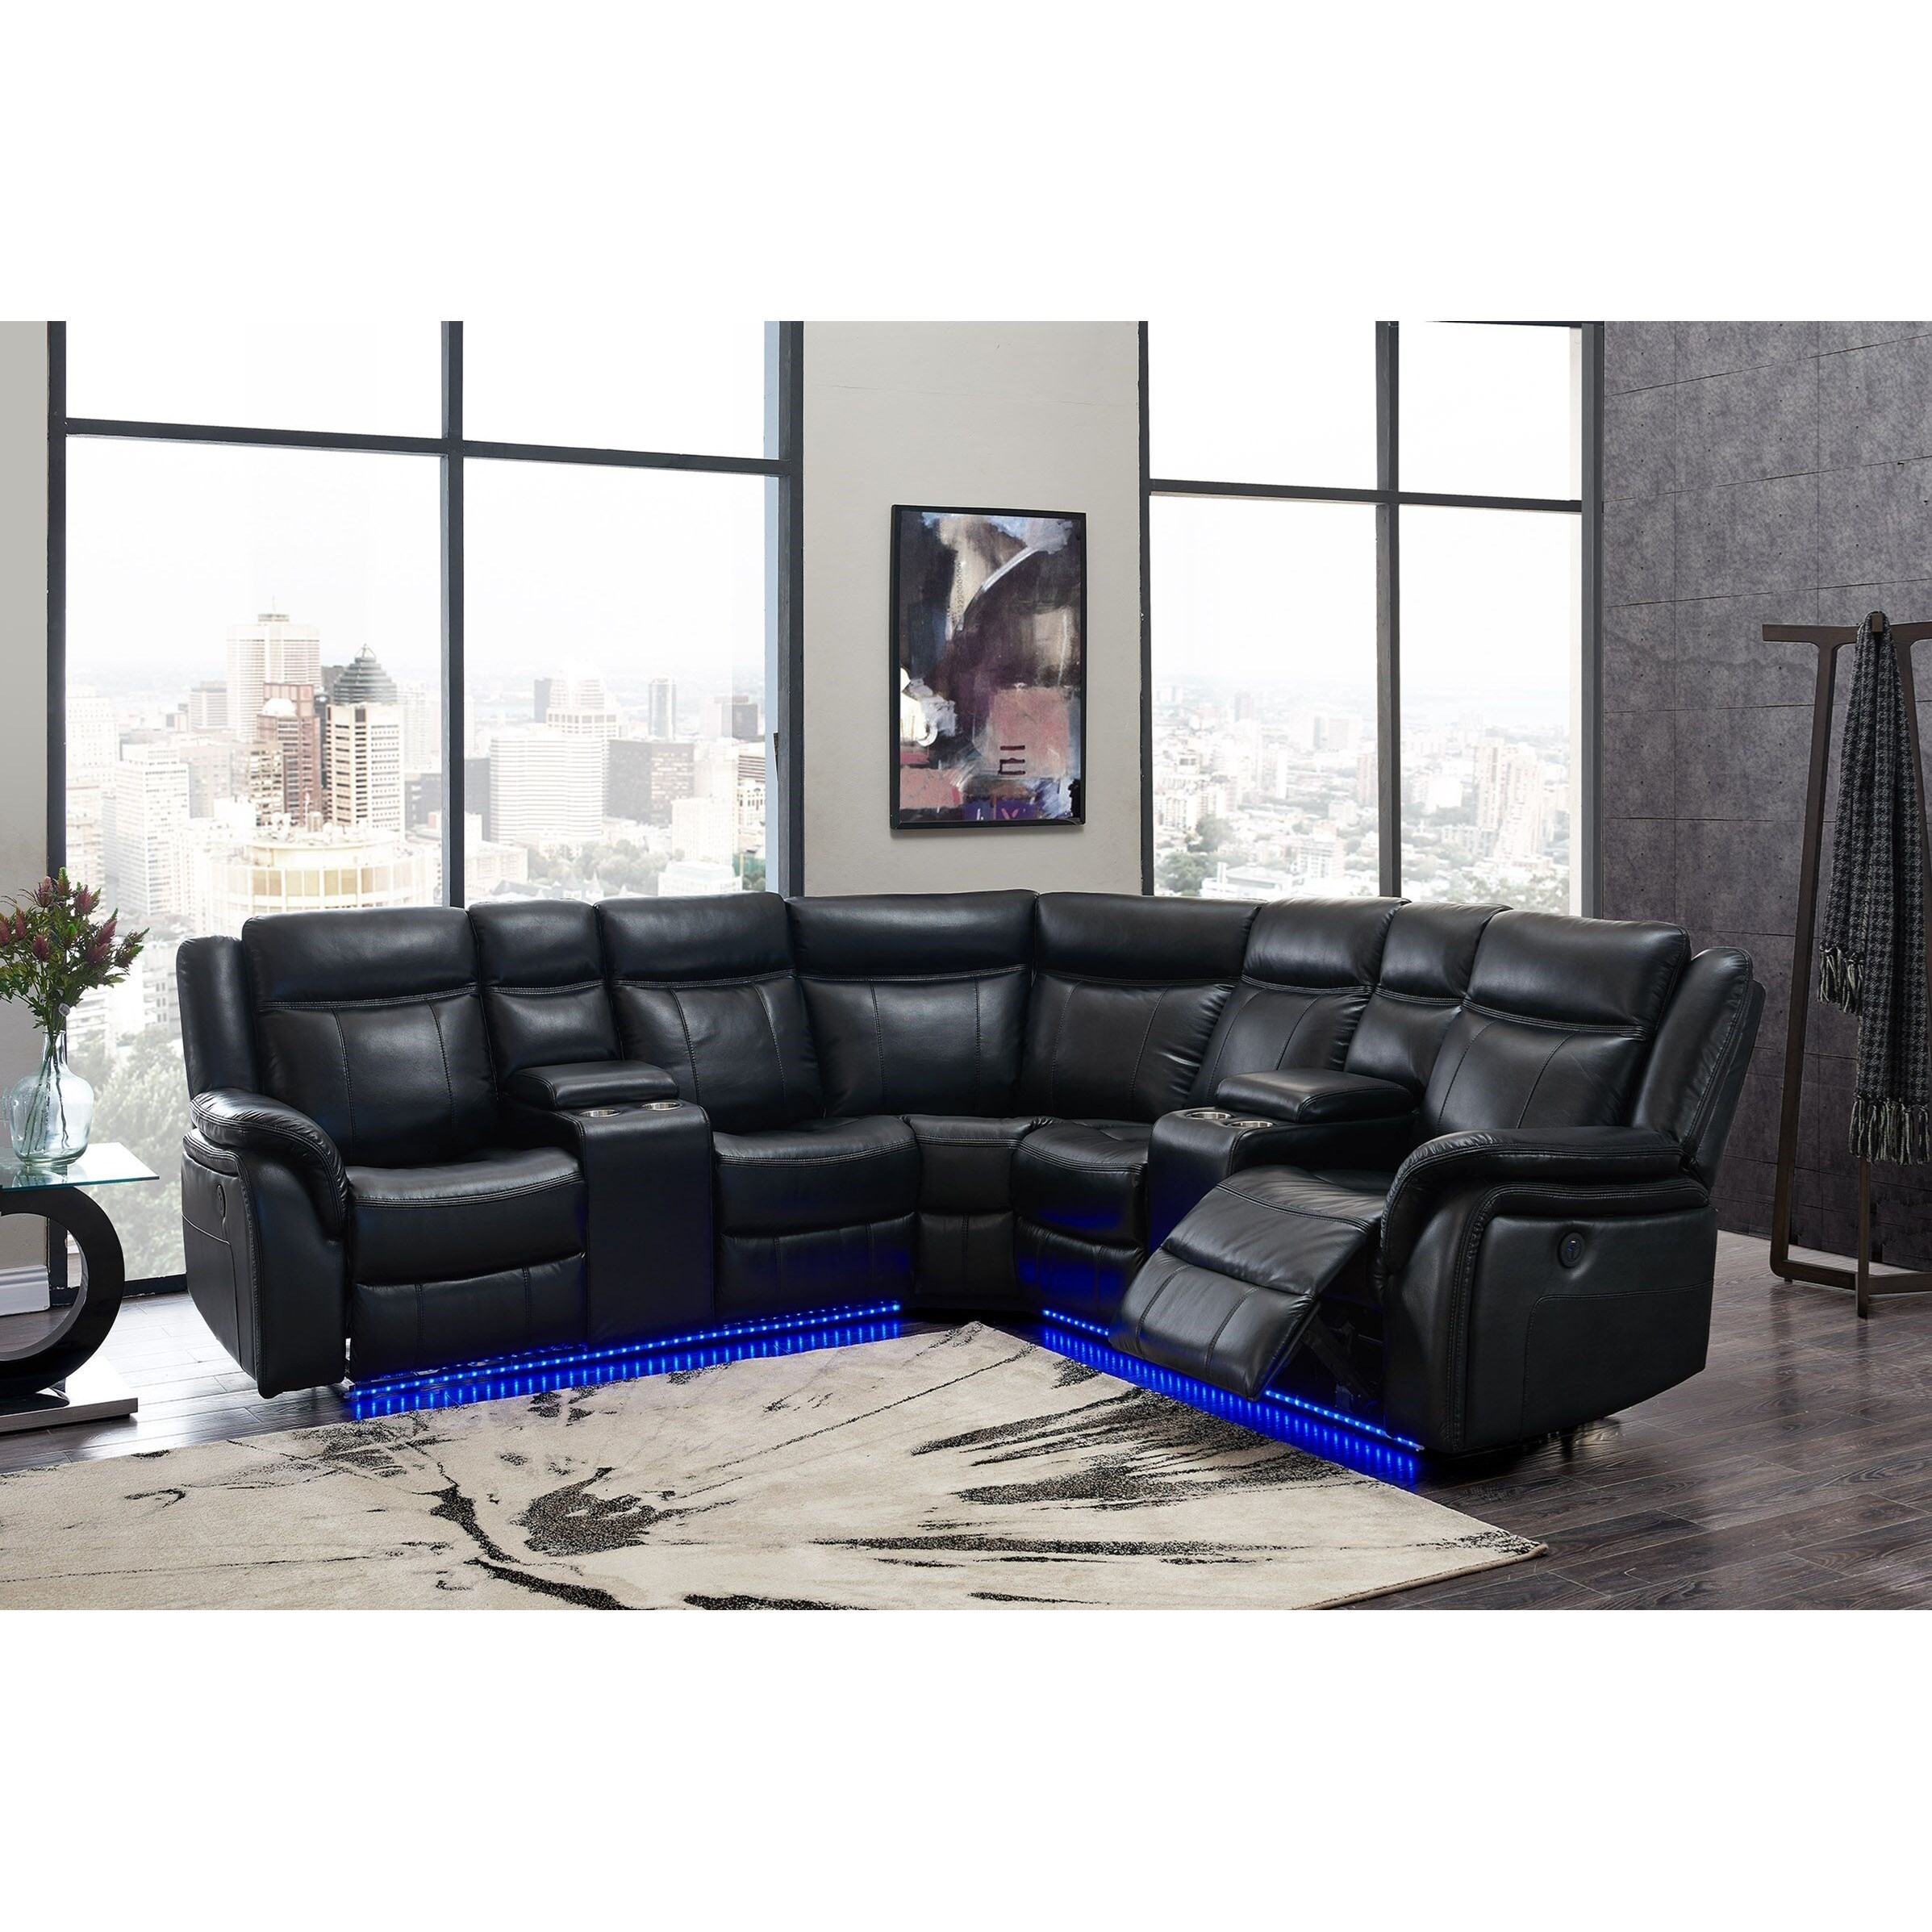 Global Furniture Um02 Casual Power Reclining Sectional Sofa With Storage Console Cup Holders And Led Lighting Value City Furniture Sectional Sofas